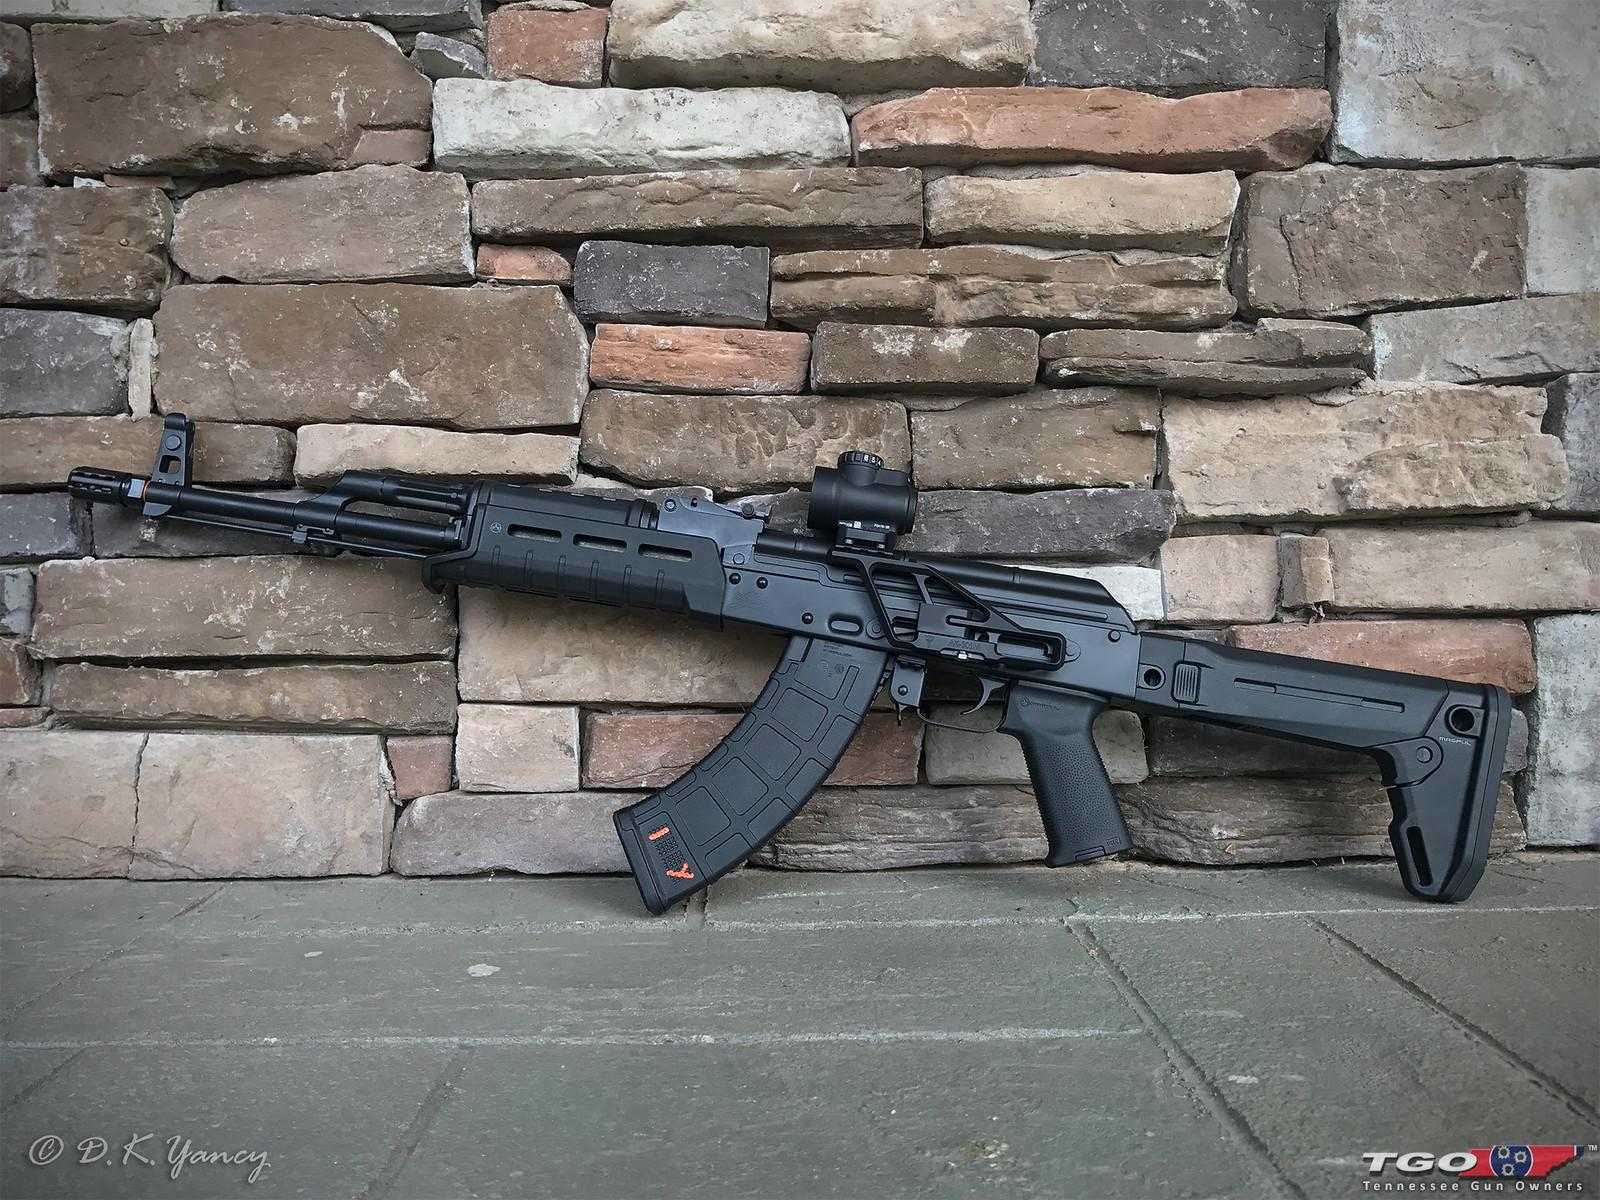 PSA AK-47 Full View TGO